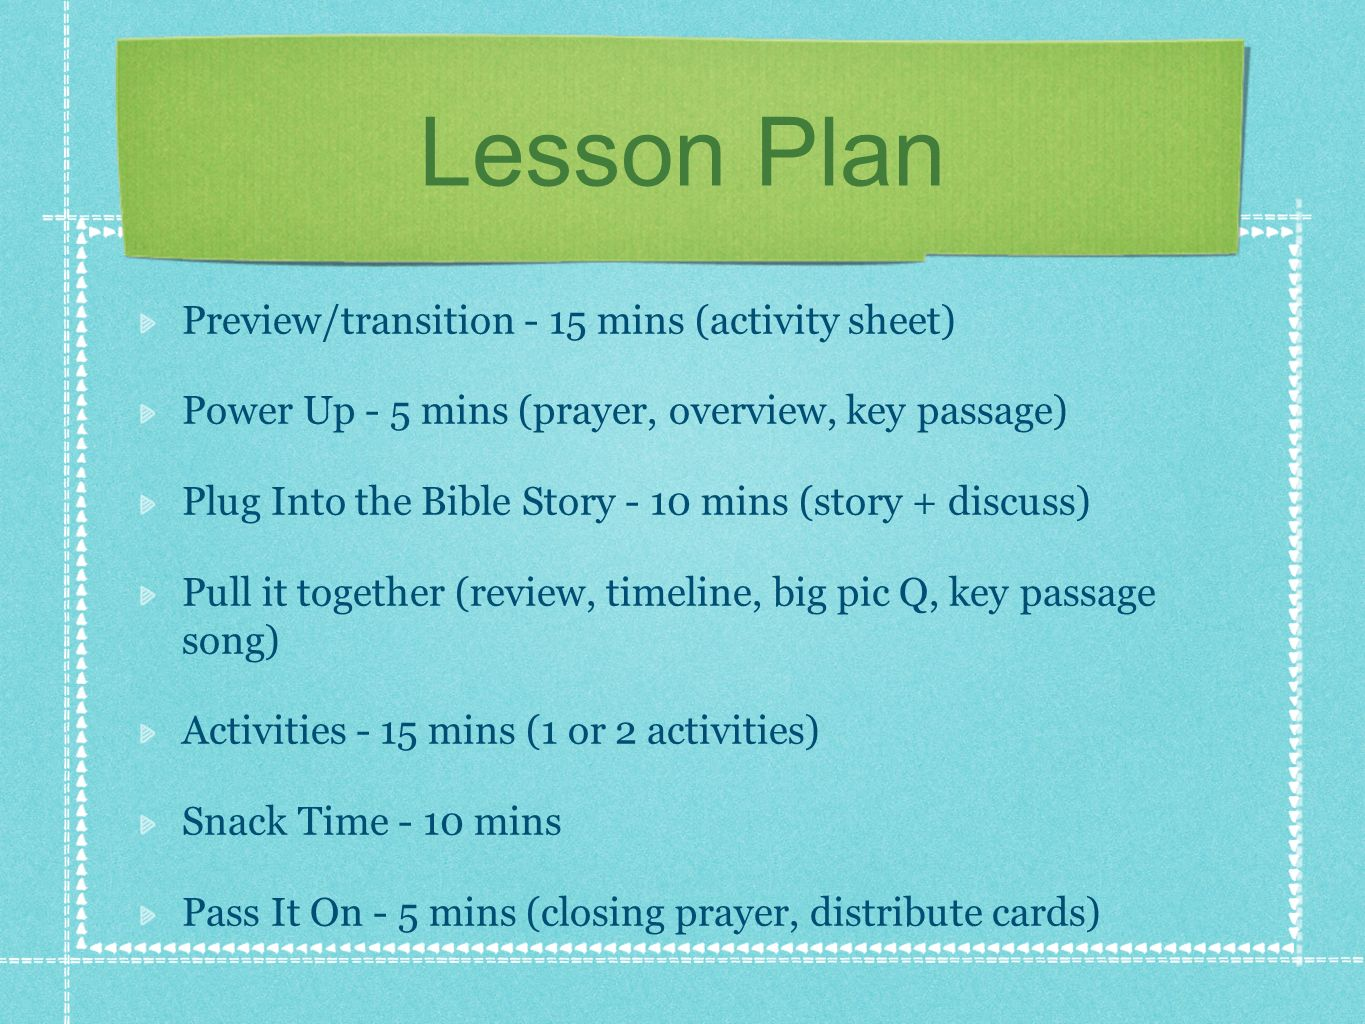 Lesson Plan Preview/transition - 15 mins (activity sheet) Power Up - 5 mins (prayer, overview, key passage) Plug Into the Bible Story - 10 mins (story